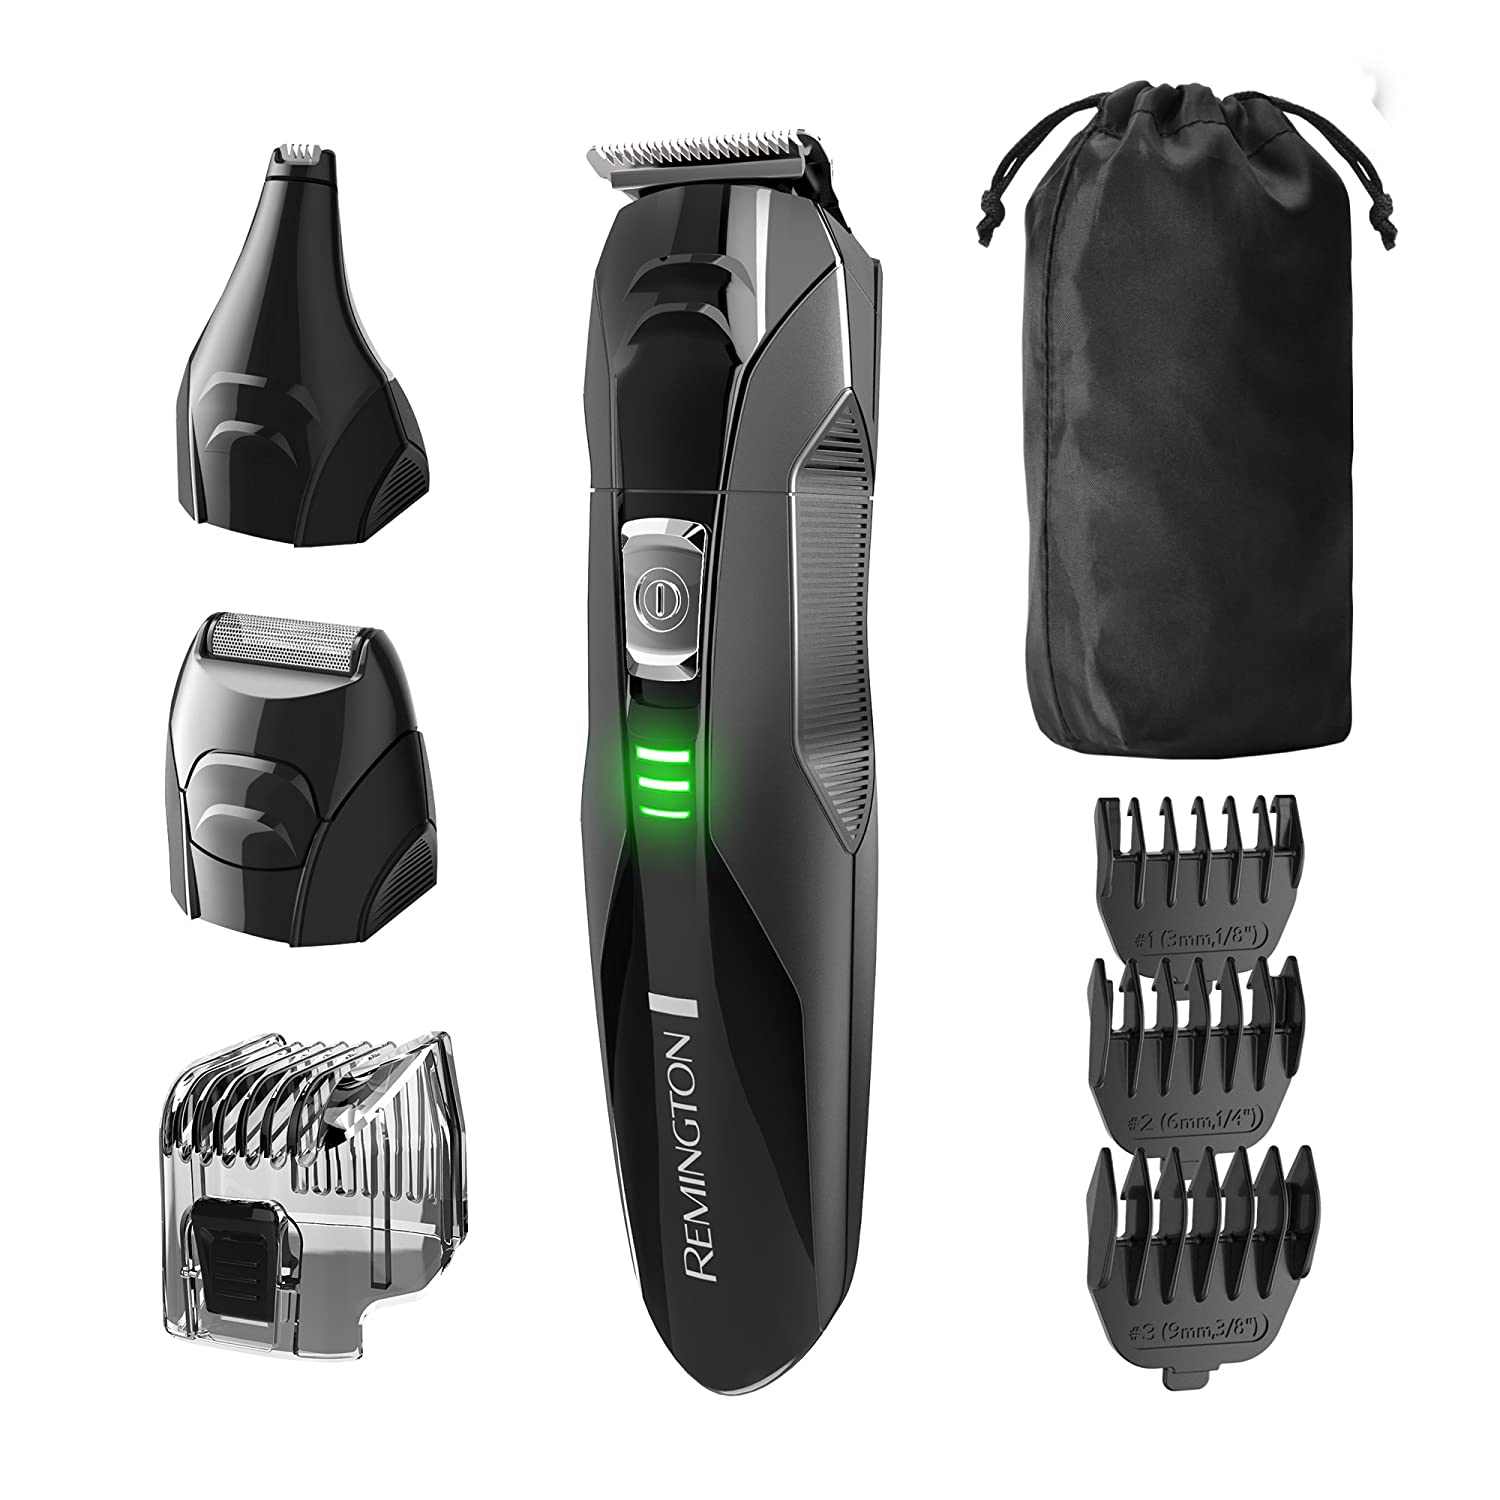 ... travel grooming kits for men. m. By momsmags · Remington PG6025  All-in-1 Lithium Powered Grooming Kit 61d427ff2a902